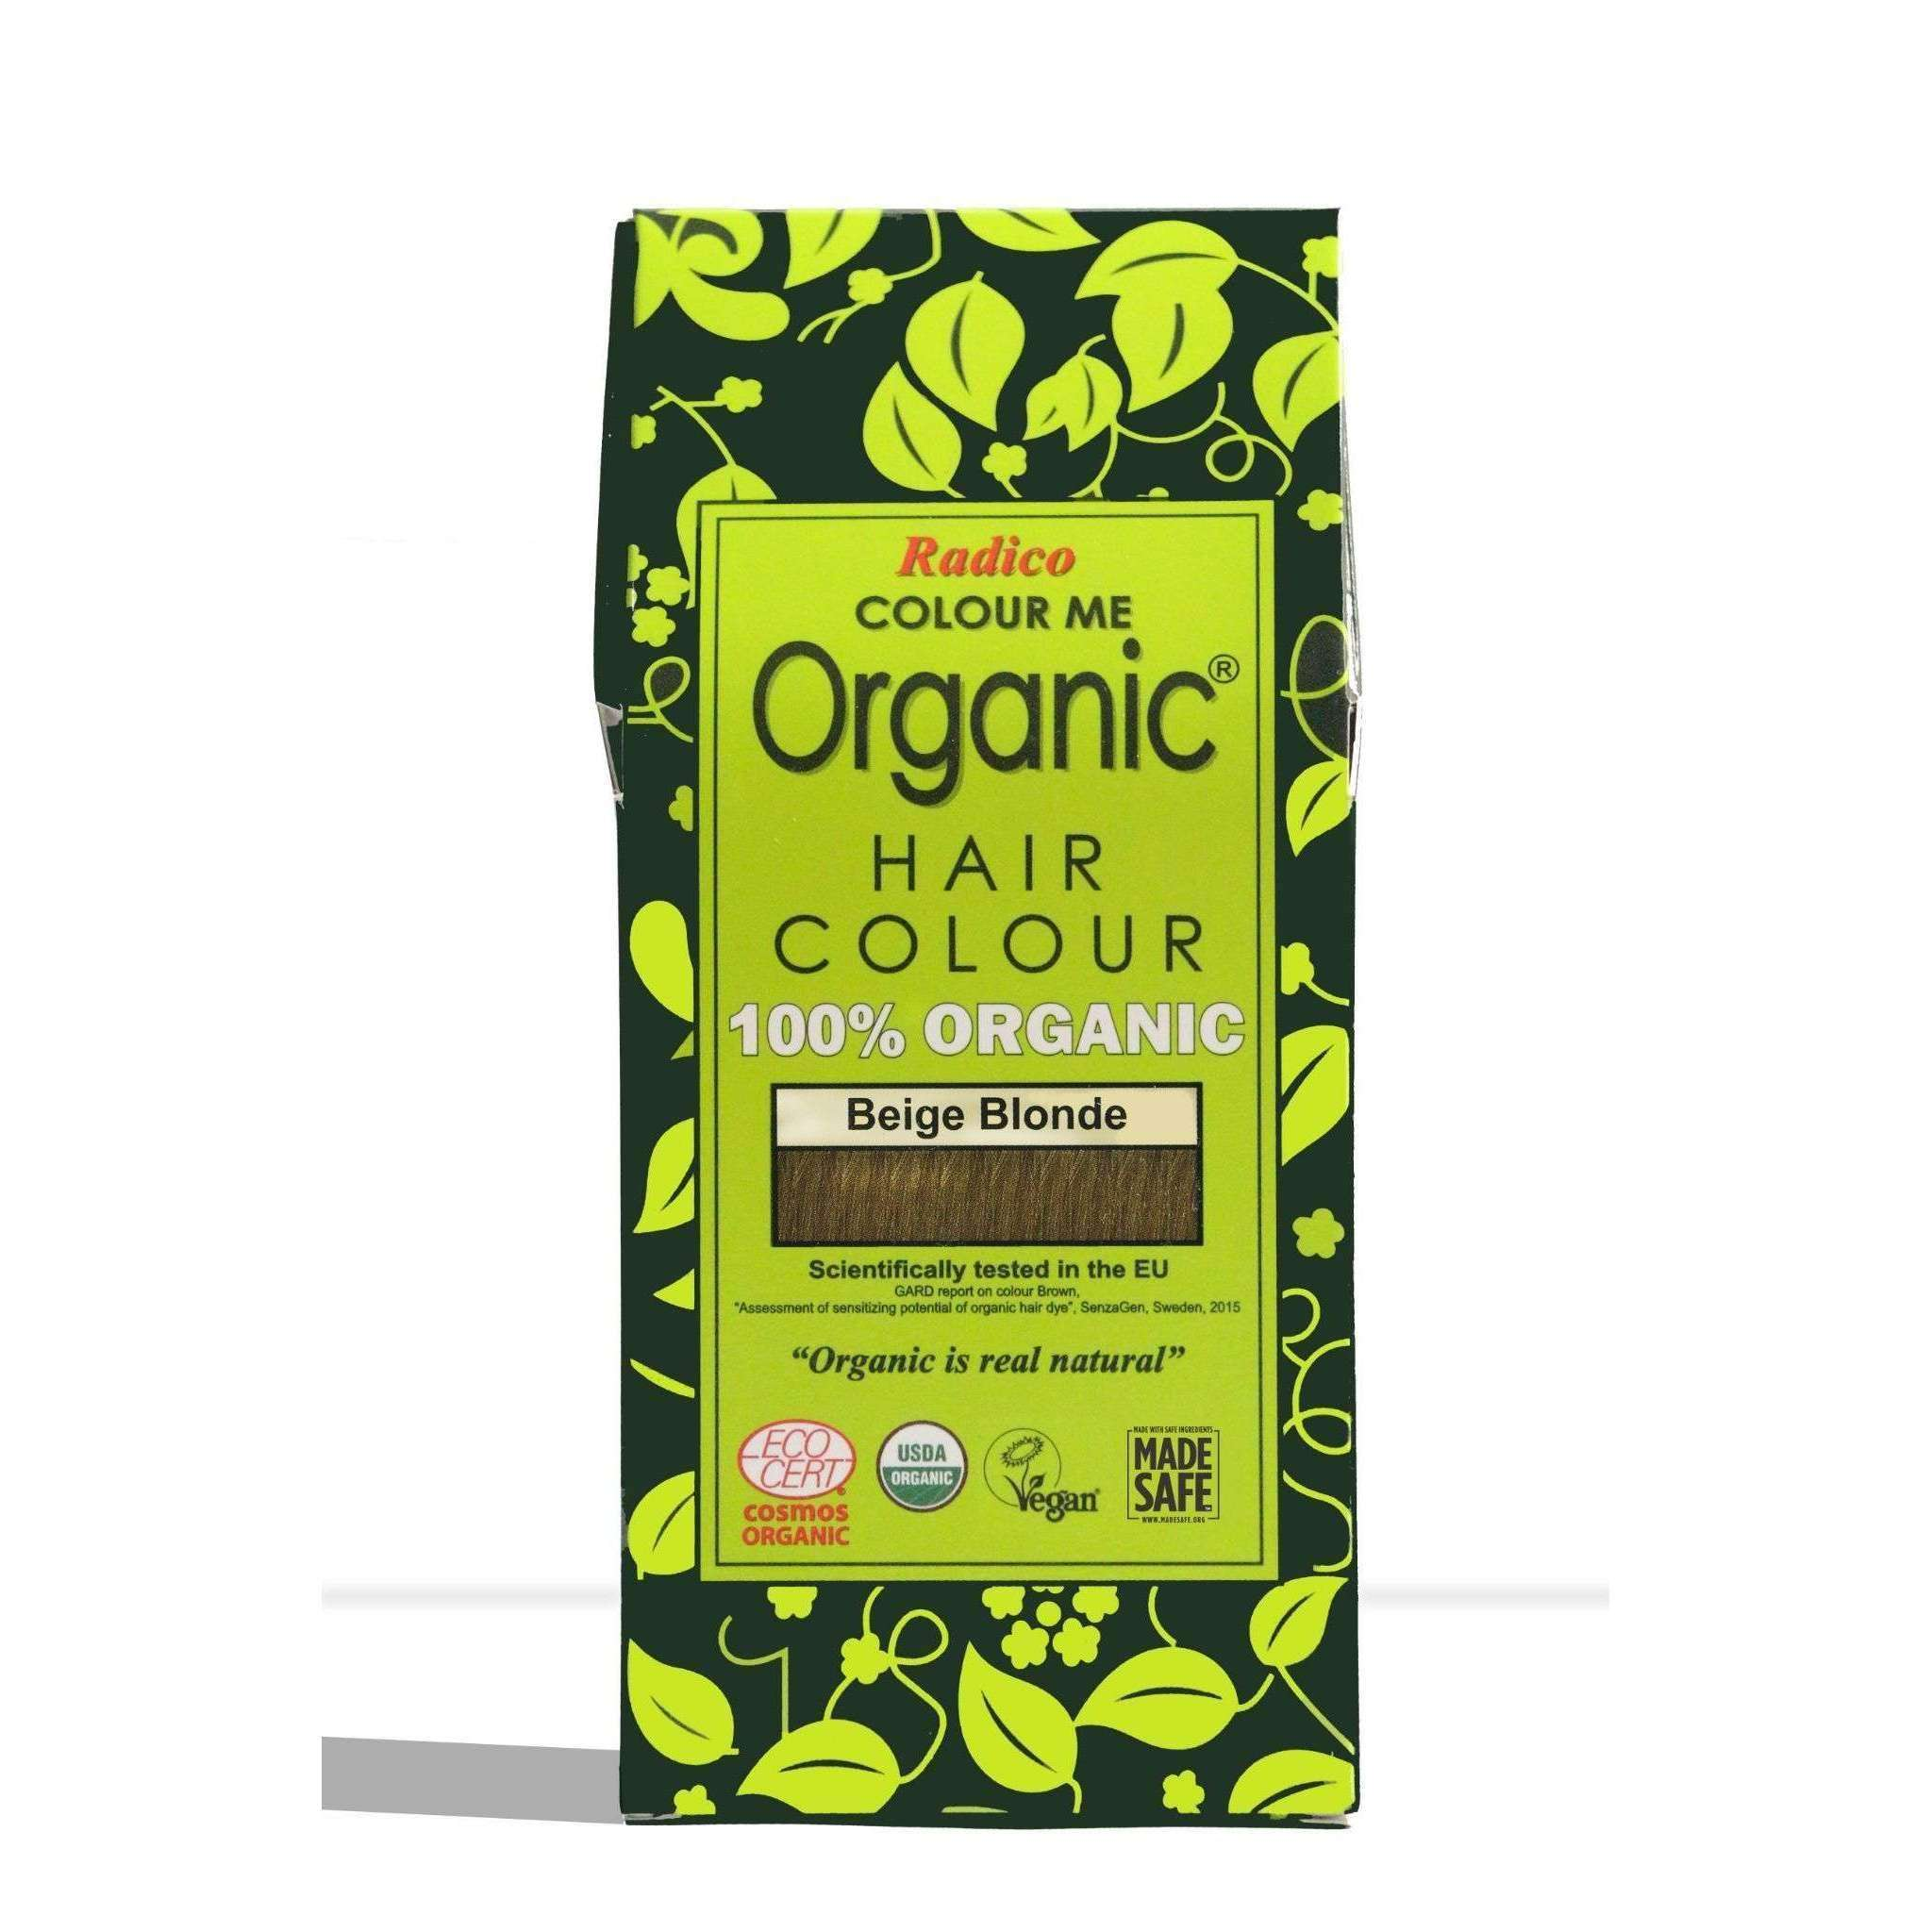 Radico Organic Hair Colour - Beige Blonde